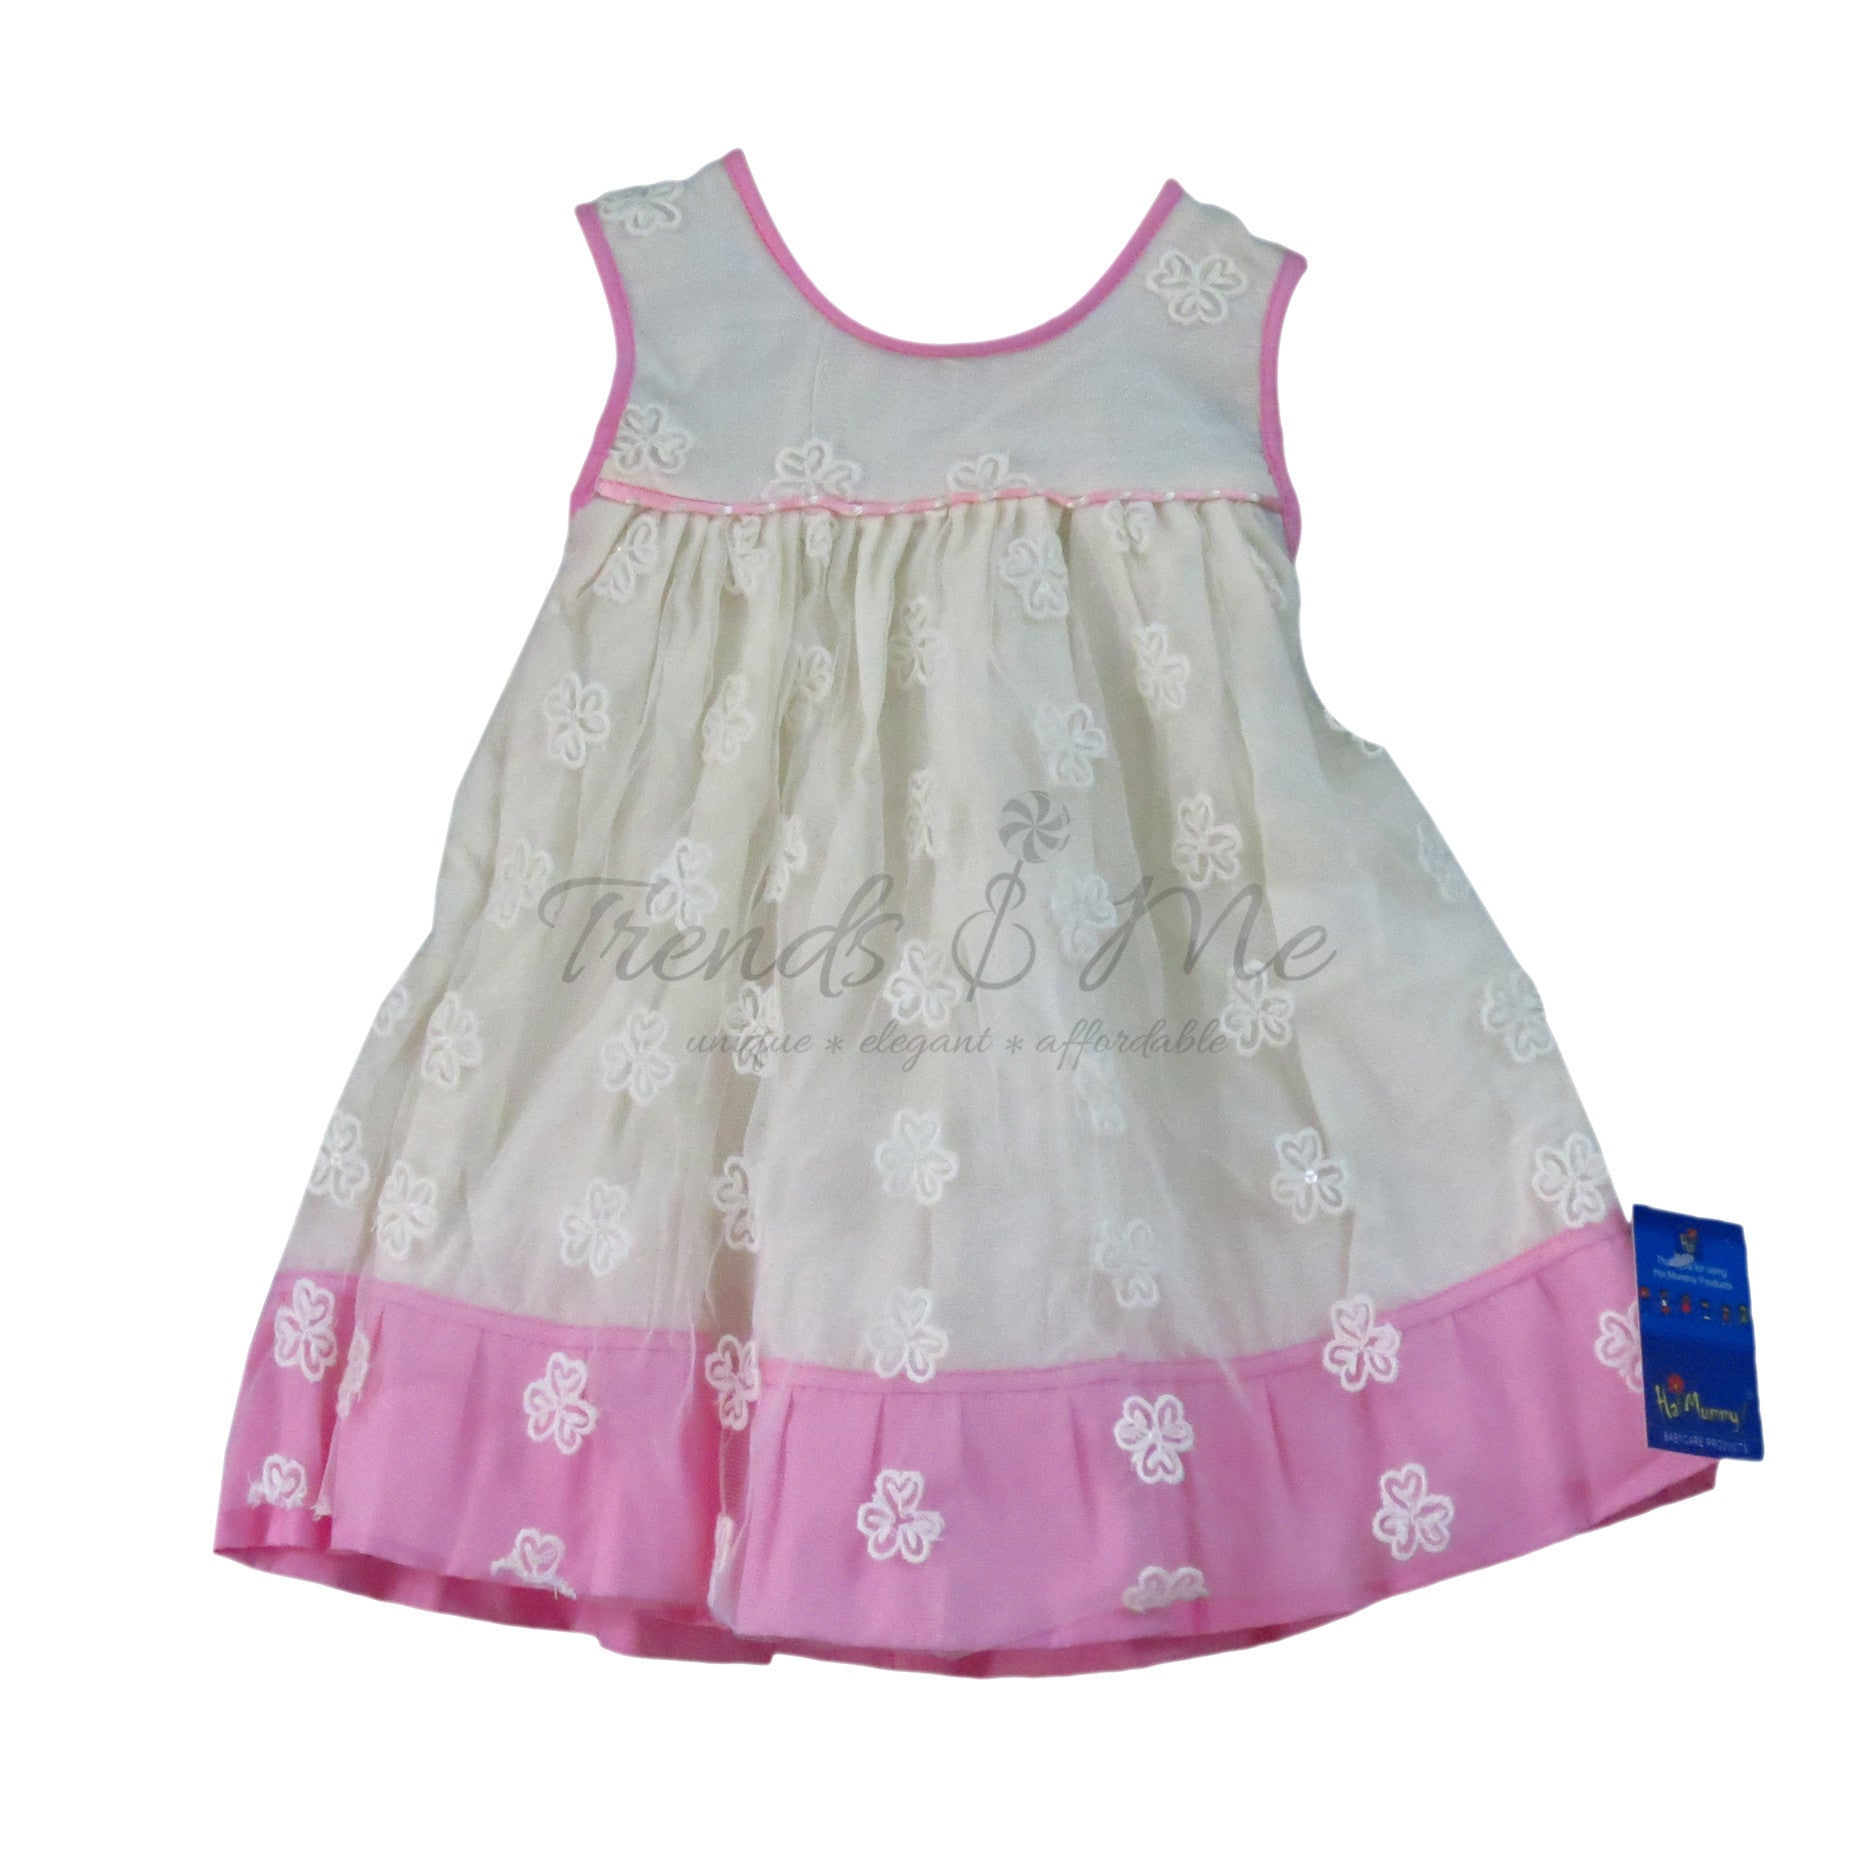 969d63a6 White Self Embroidered Net Dress With Pink Satin Ribbon Piping Yoke - Trends  and Me